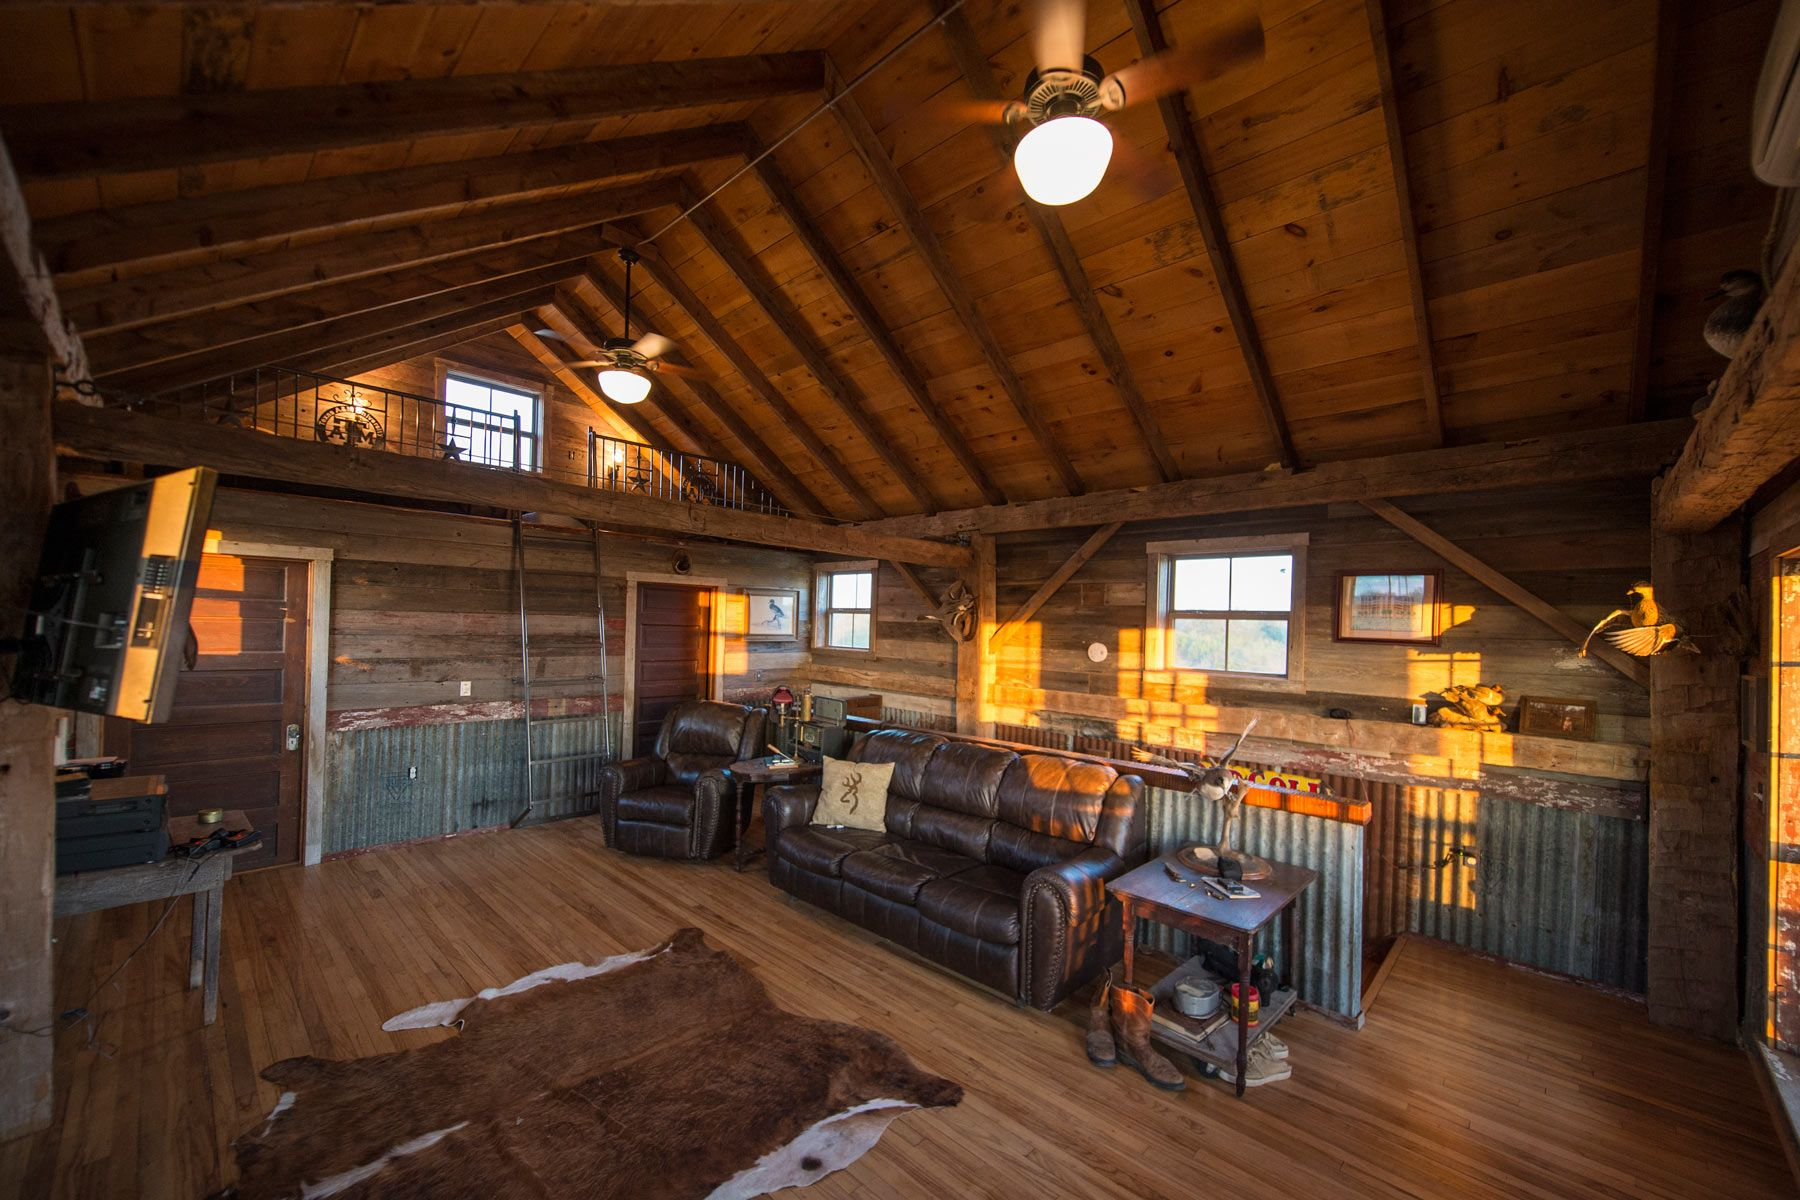 barn garages with loft | Barn With Loft Living Quarters | Joy ...